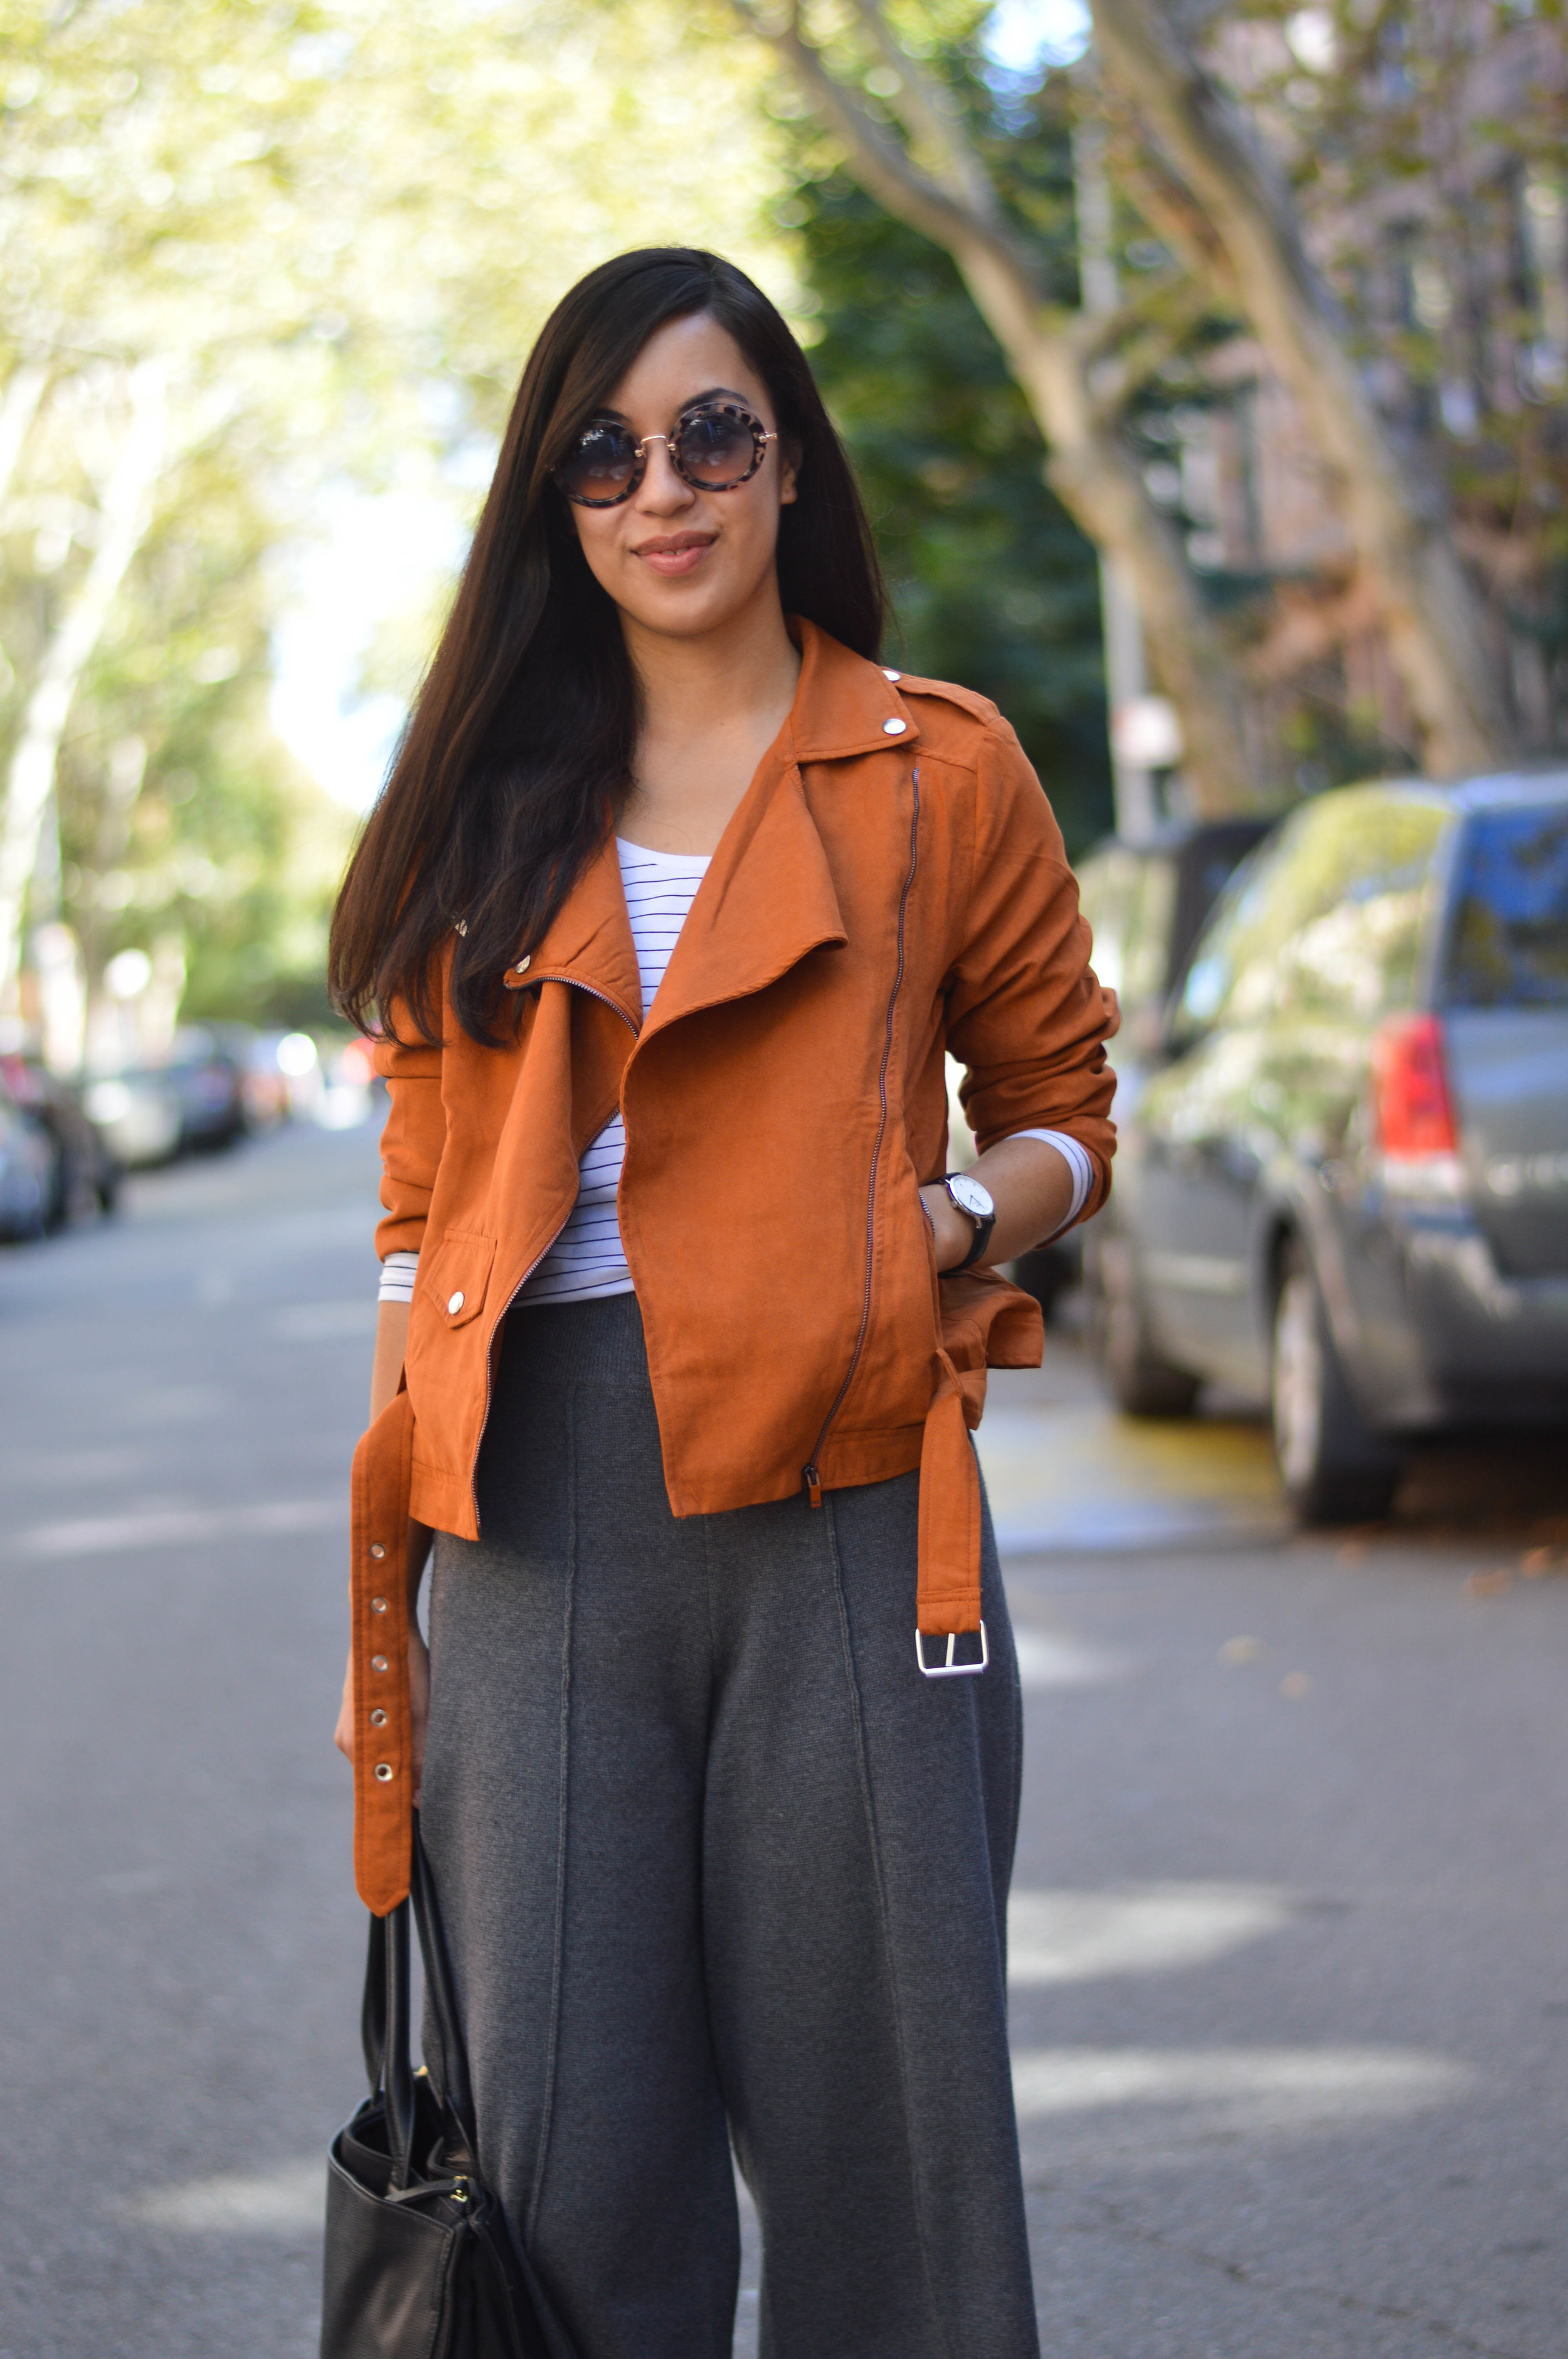 shein blogger review